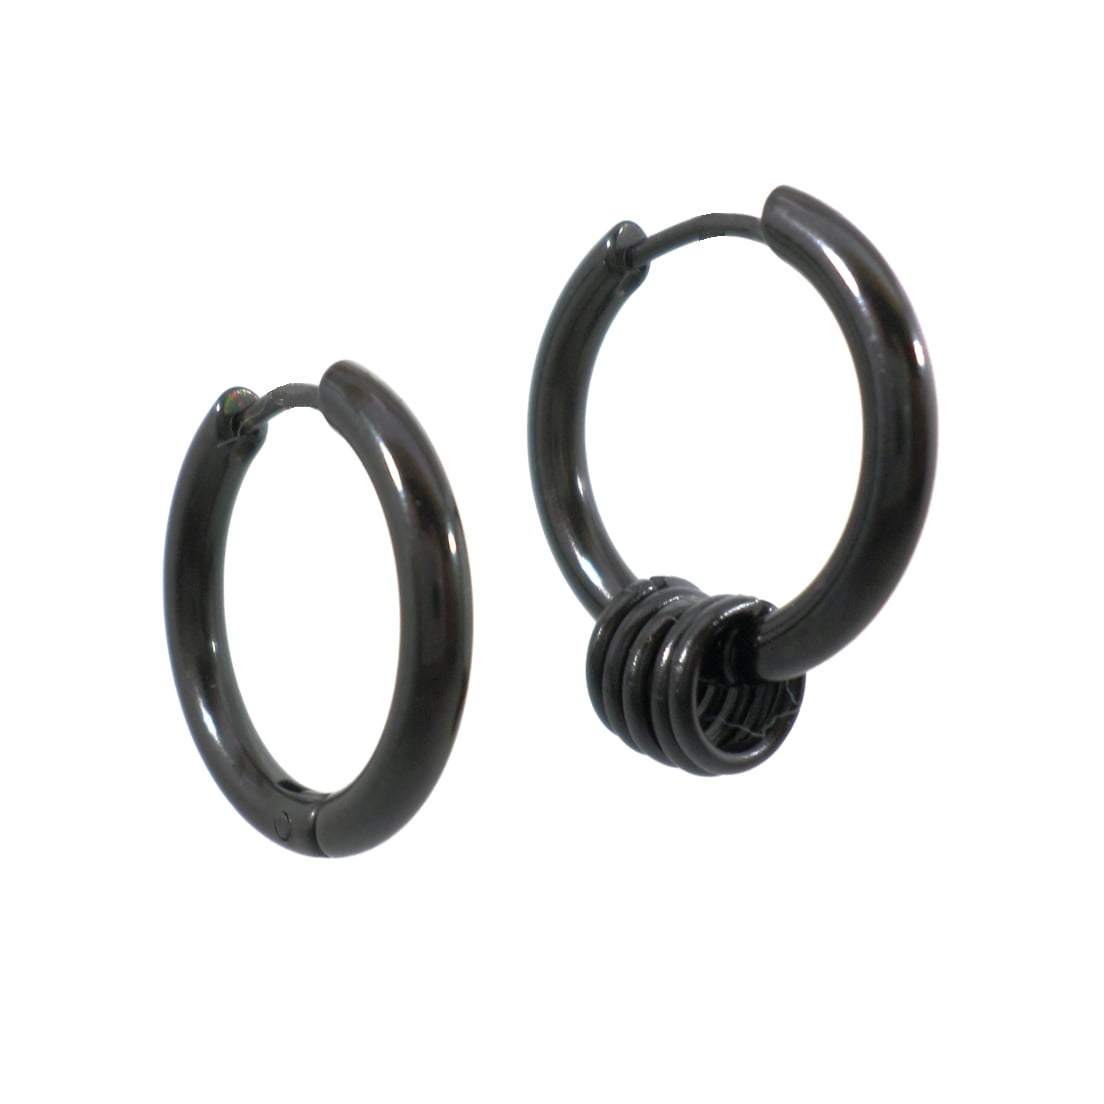 BRINCO MIX ARGOLAS PRETO 2 mm